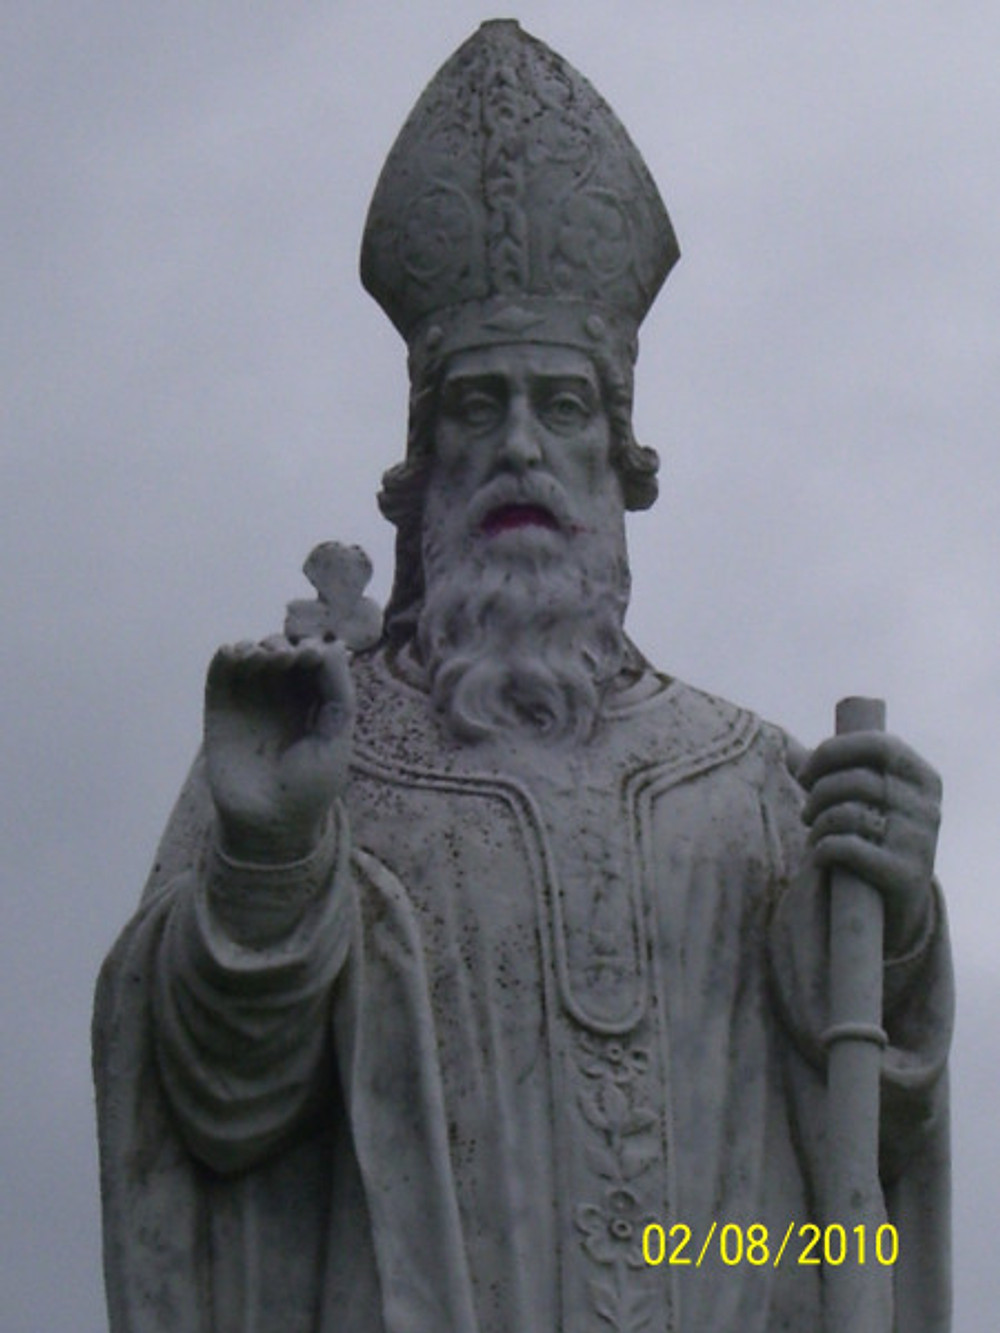 St Patrick statue, white marble, holding 3 leaf clover